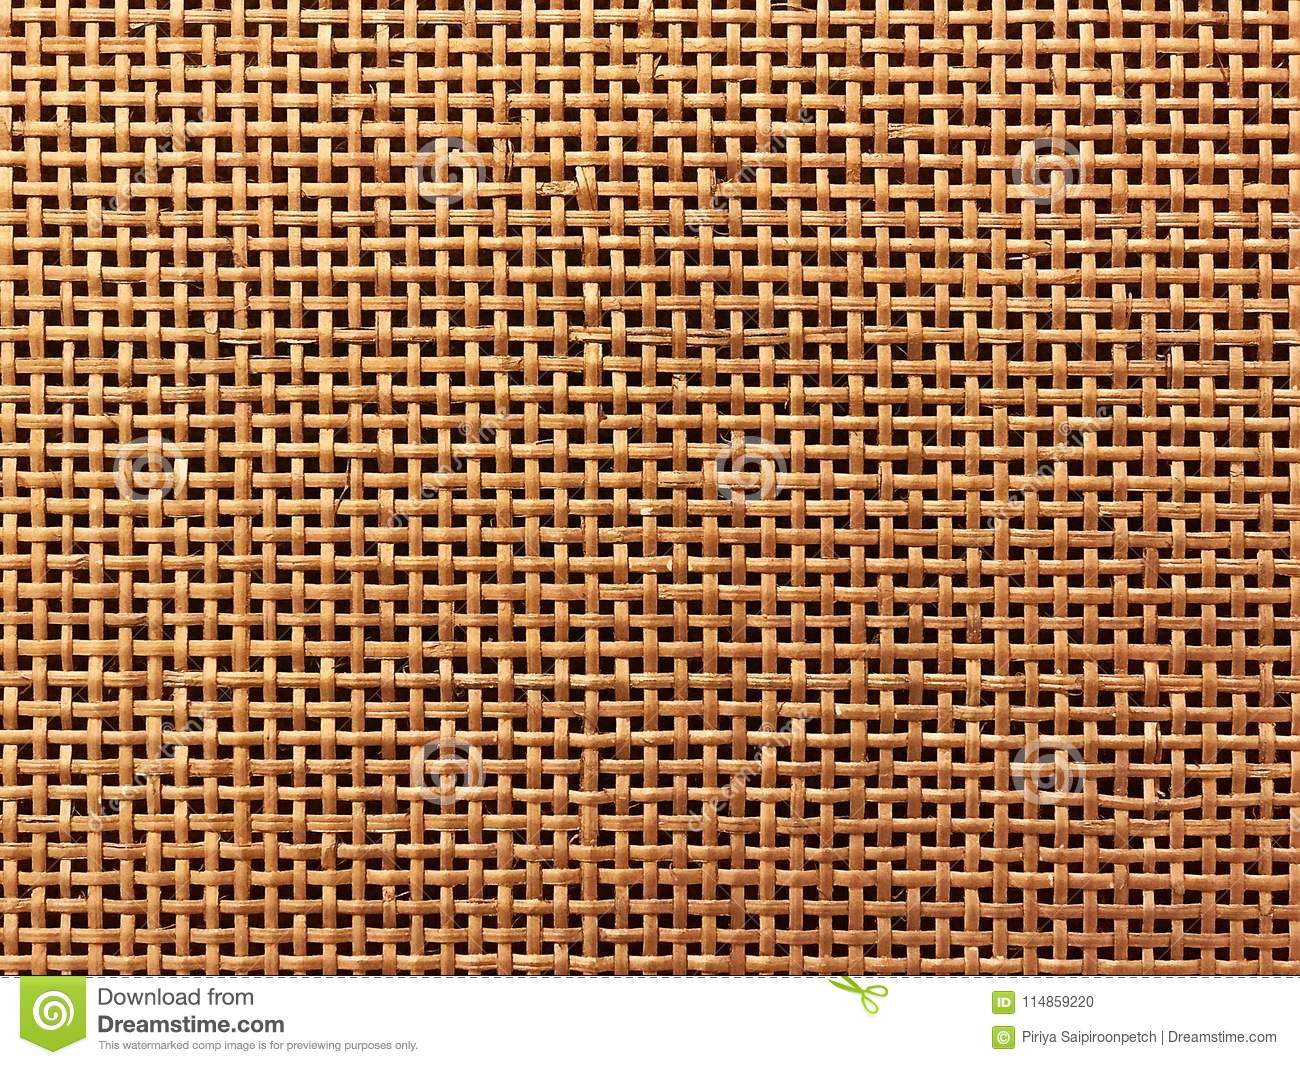 Surface of Brown Wicker texture for background.